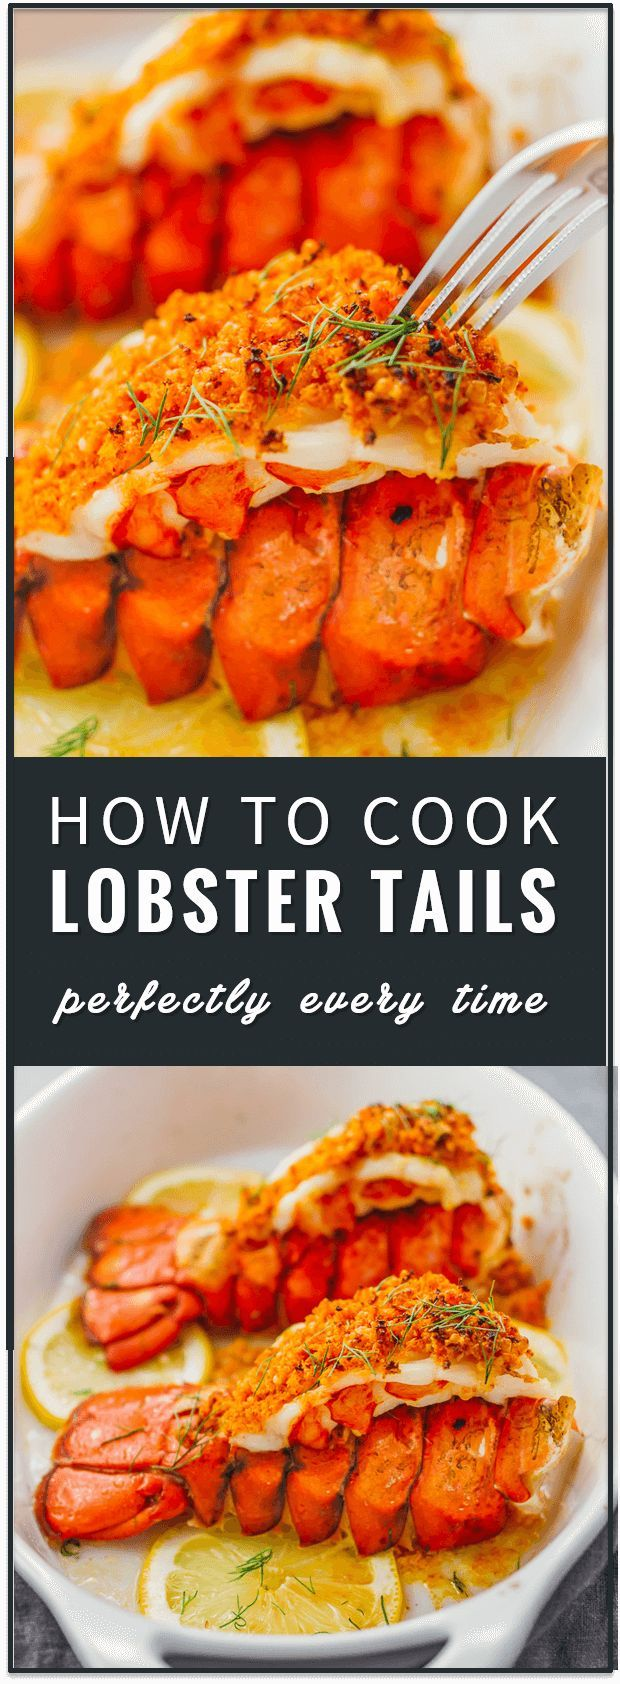 How to Cook Lobster Tails with lemon garlic butter and a parmesan bread crumb topping. | savorytooth.com